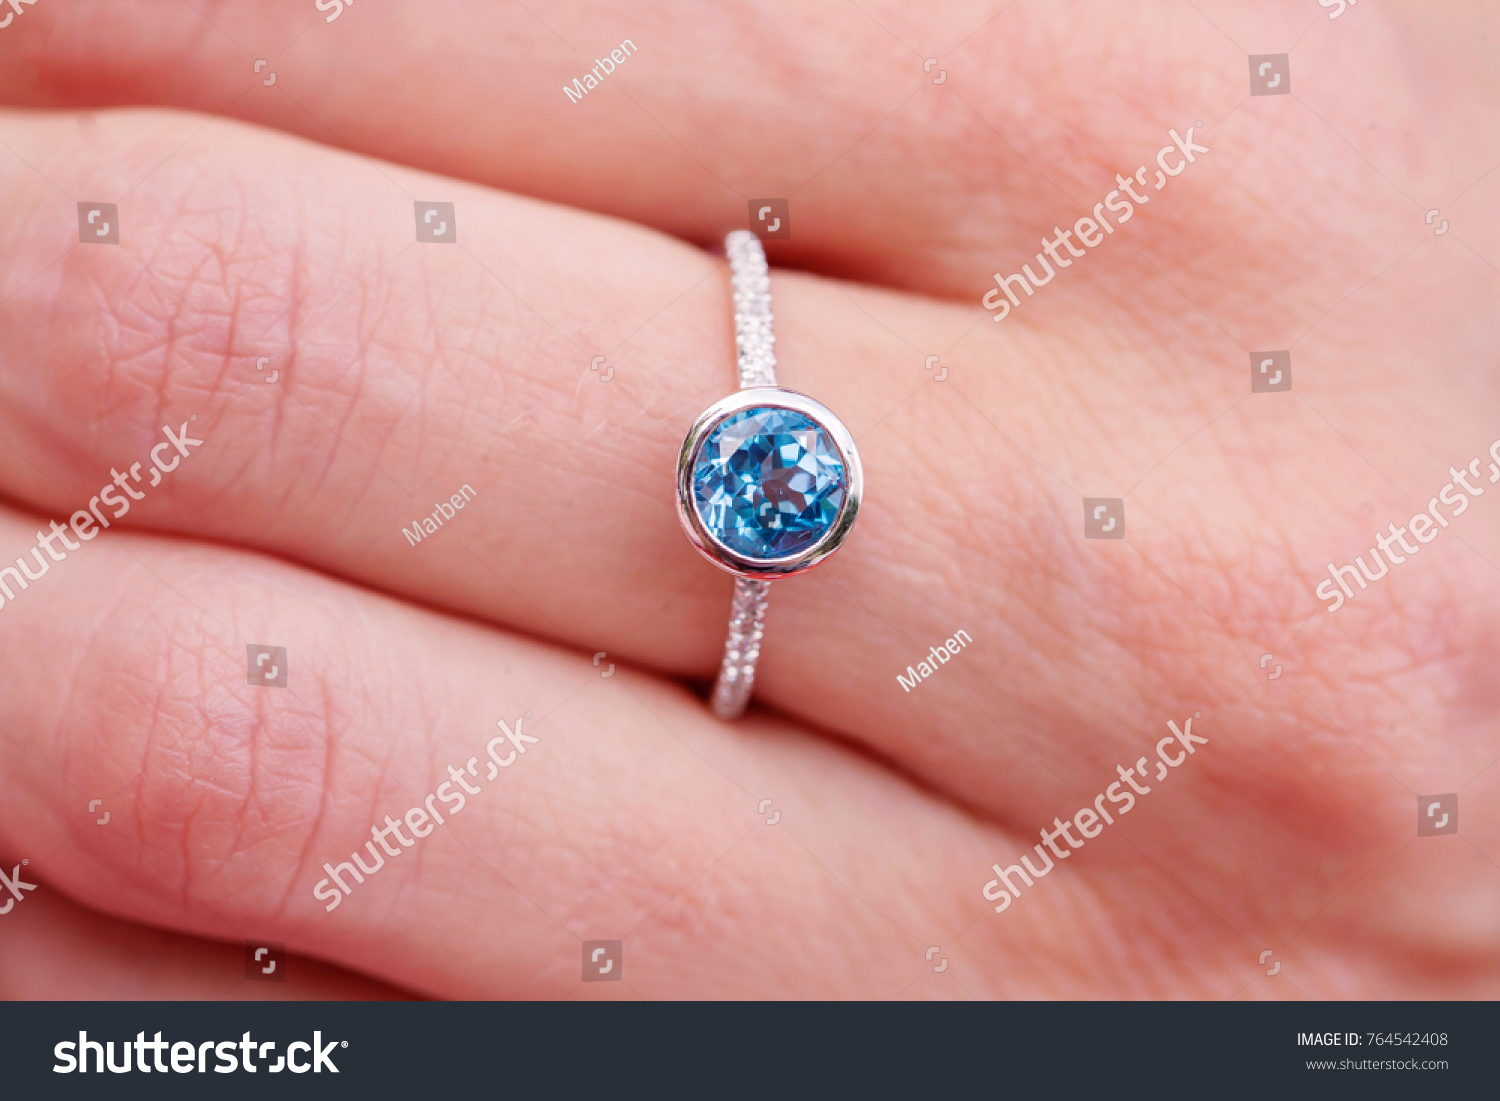 Engagement Ring On Female Hand Stock Photo (Edit Now) 764542408 ...